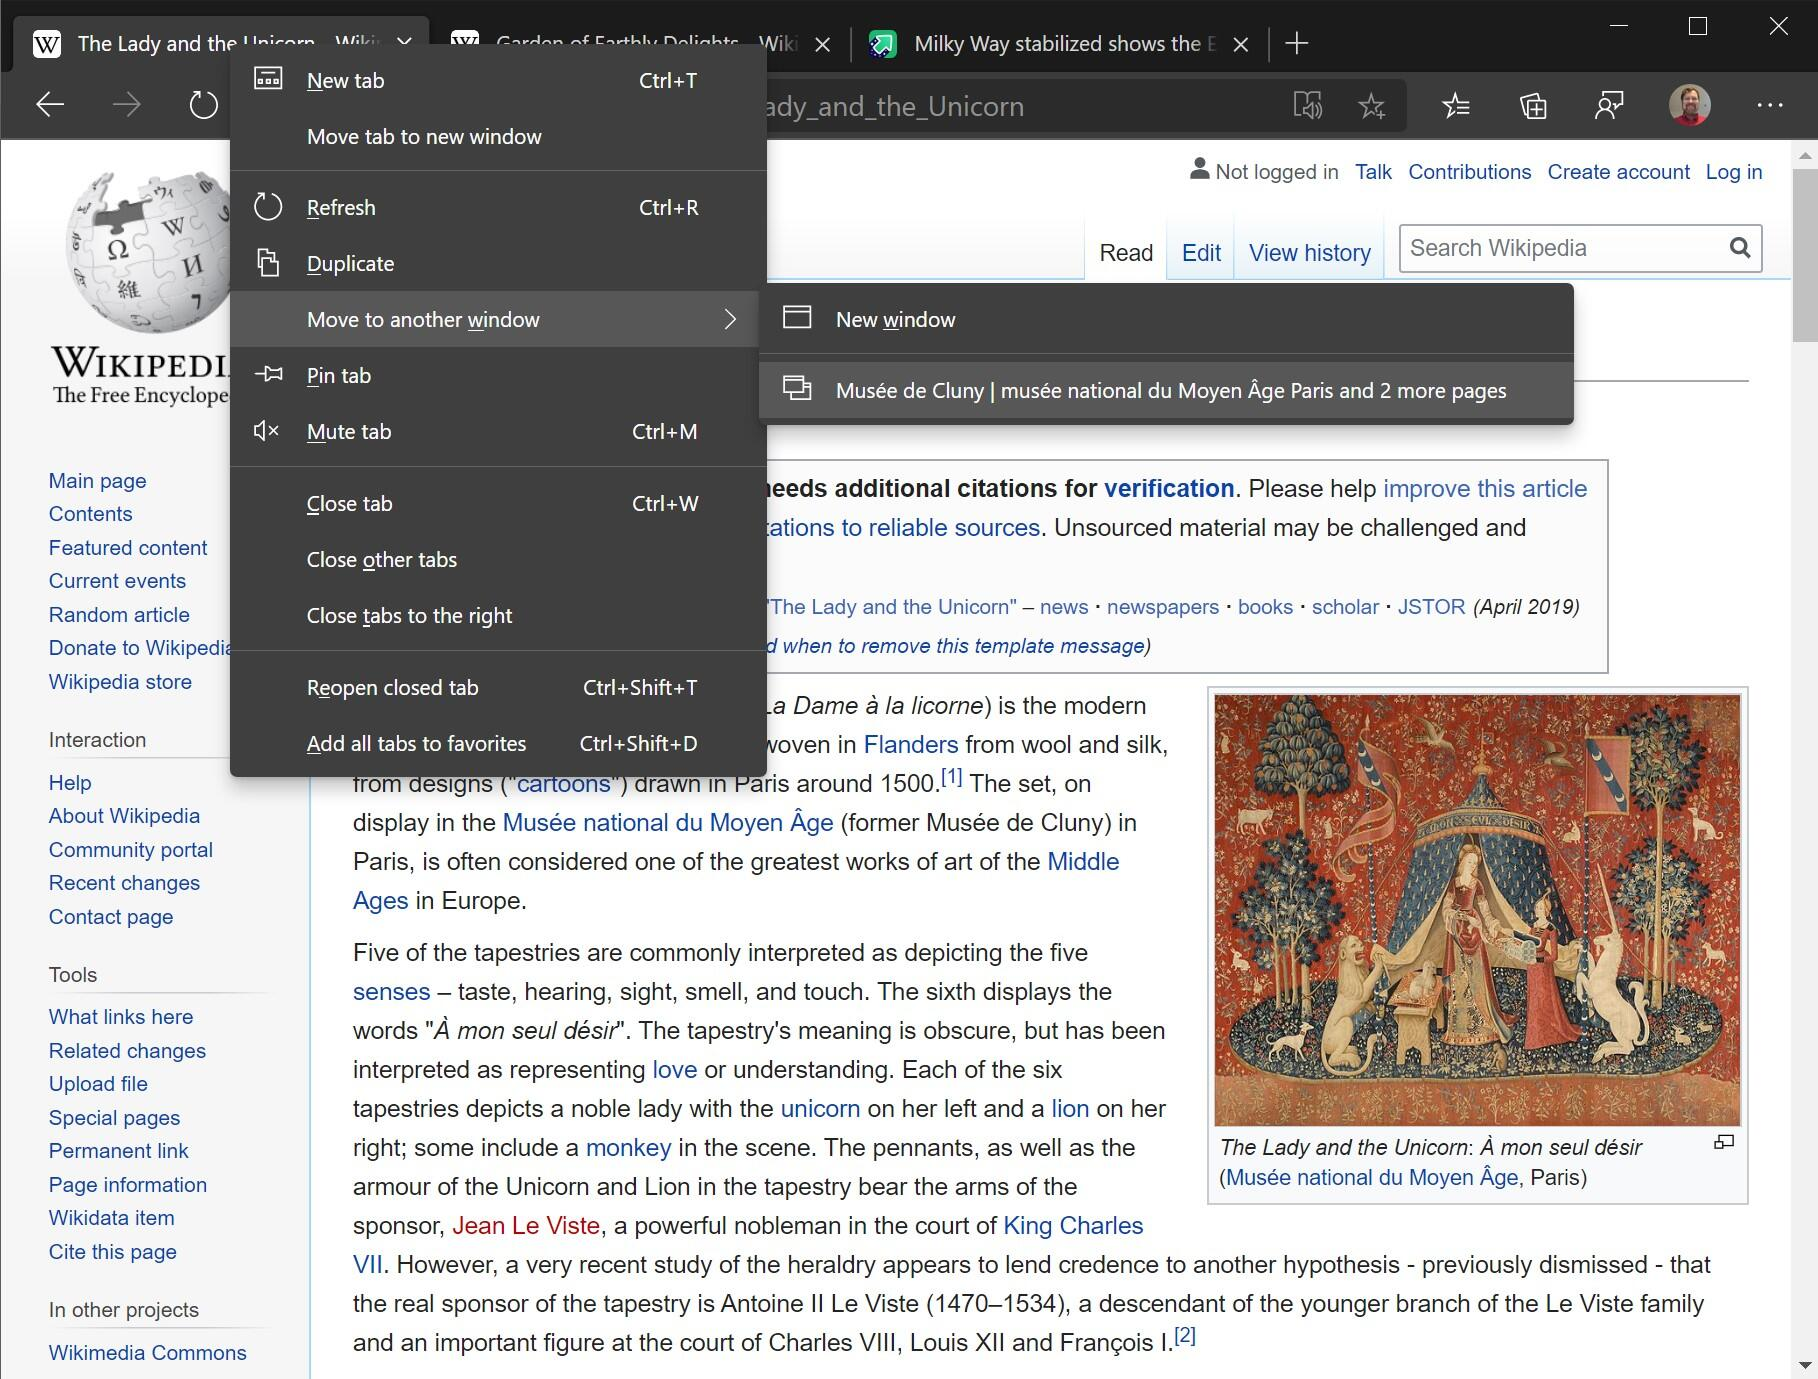 Microsoft's Edge browser lets you move a single tab or group of tabs to a new browser window, a feature that can be useful for grouping related tabs together.